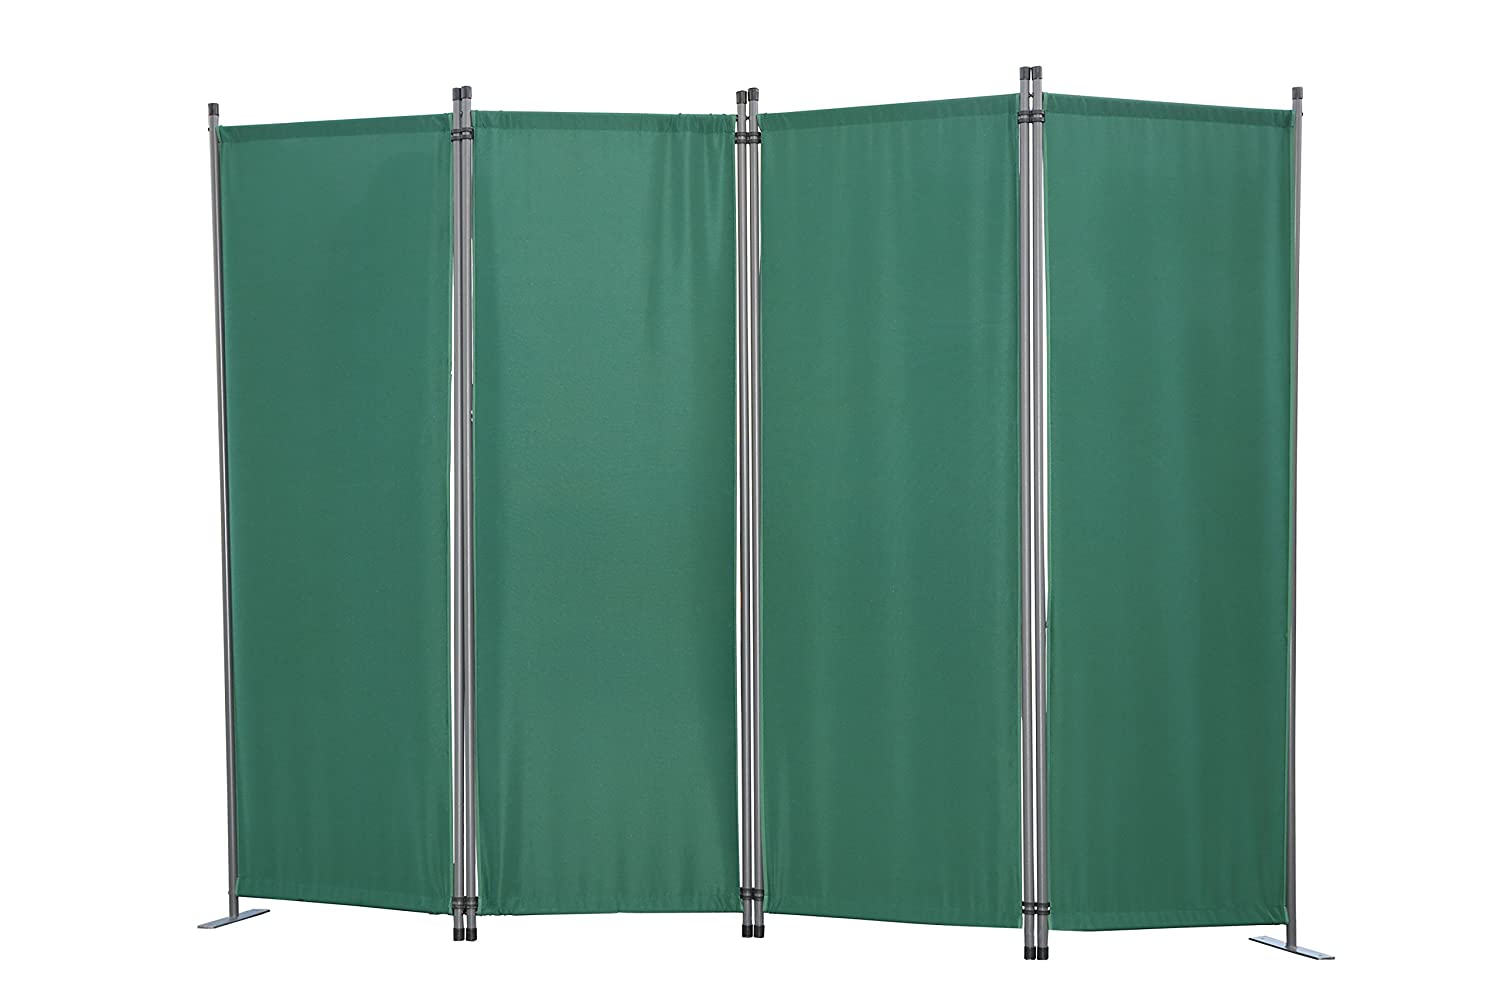 Angel Living Protective Screens Room Divider Screen Panel Folding Room Partition Wall Furniture Outdoor Screens for Patio Privacy (4-piece 225x165cm, Green)